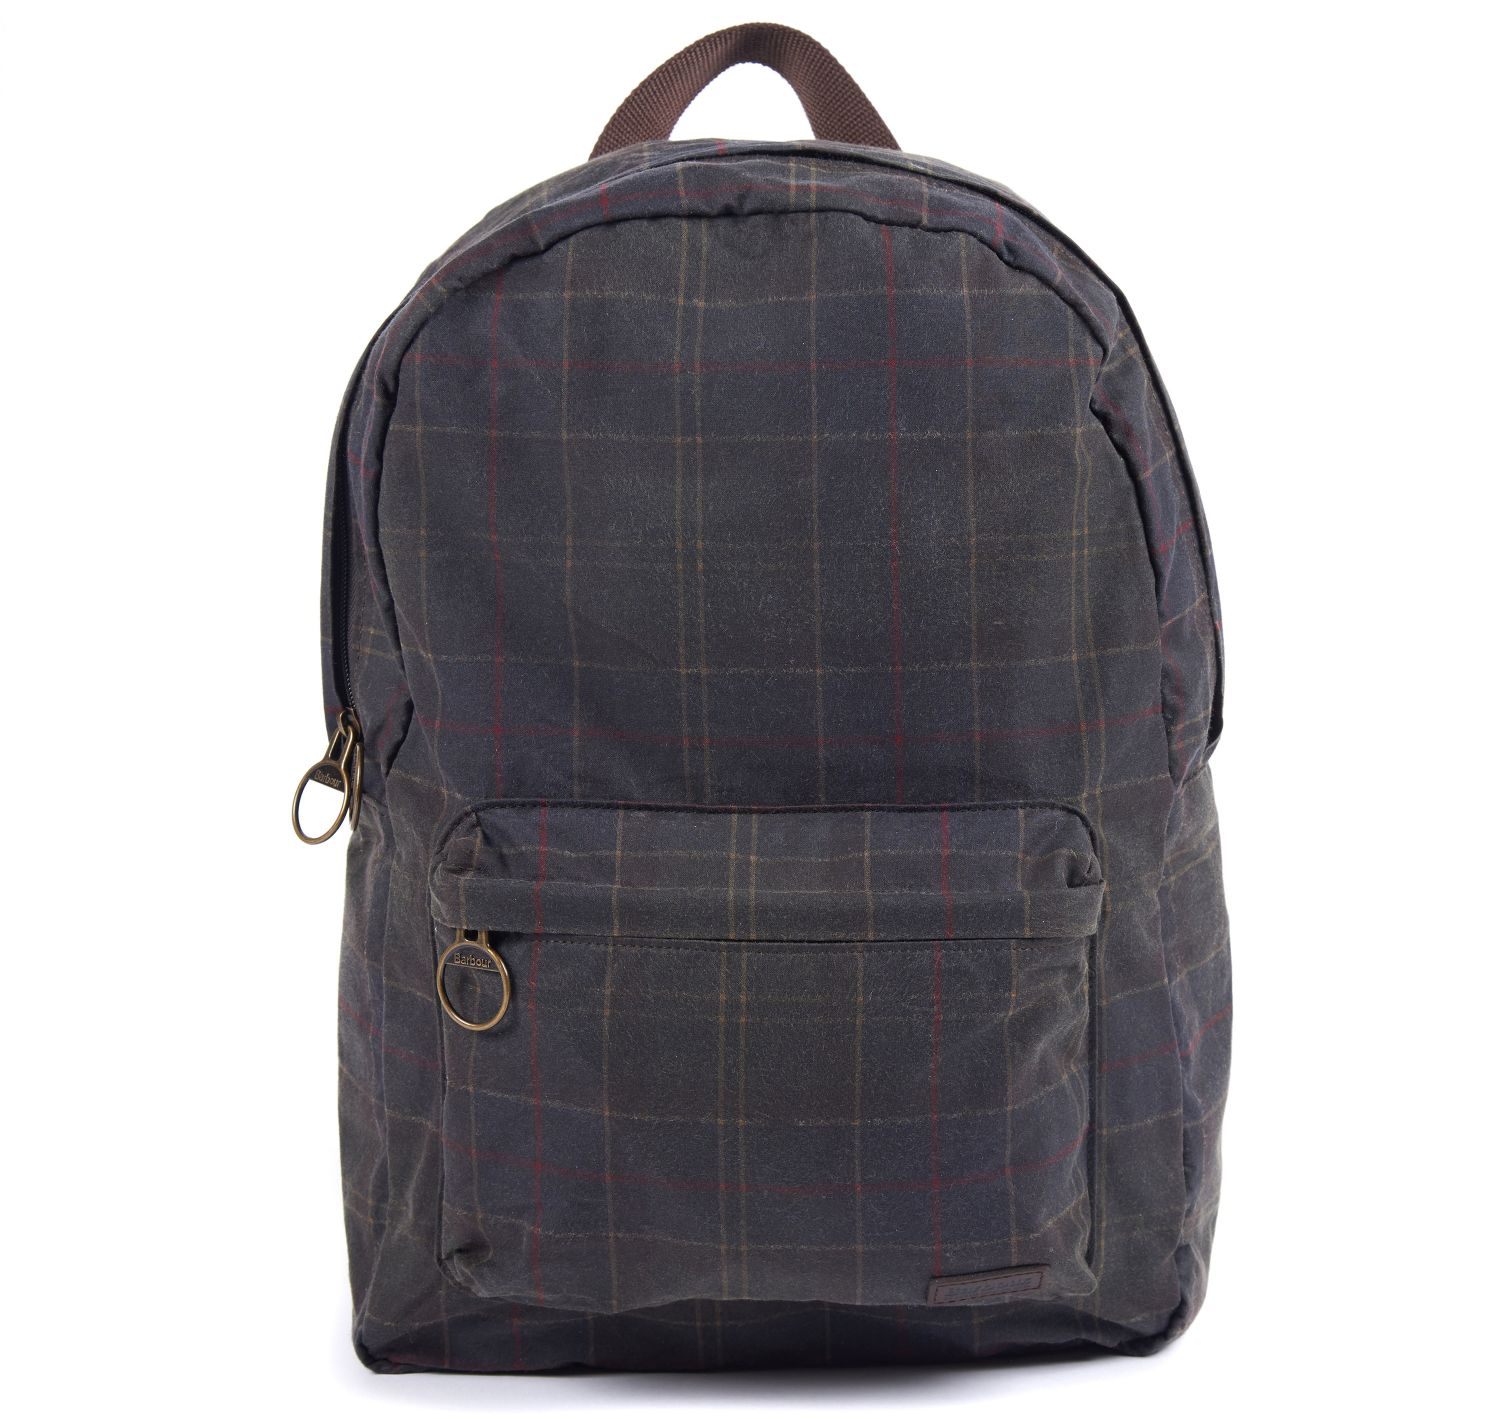 Barbour Barbour Eadan Backpack Barbour International